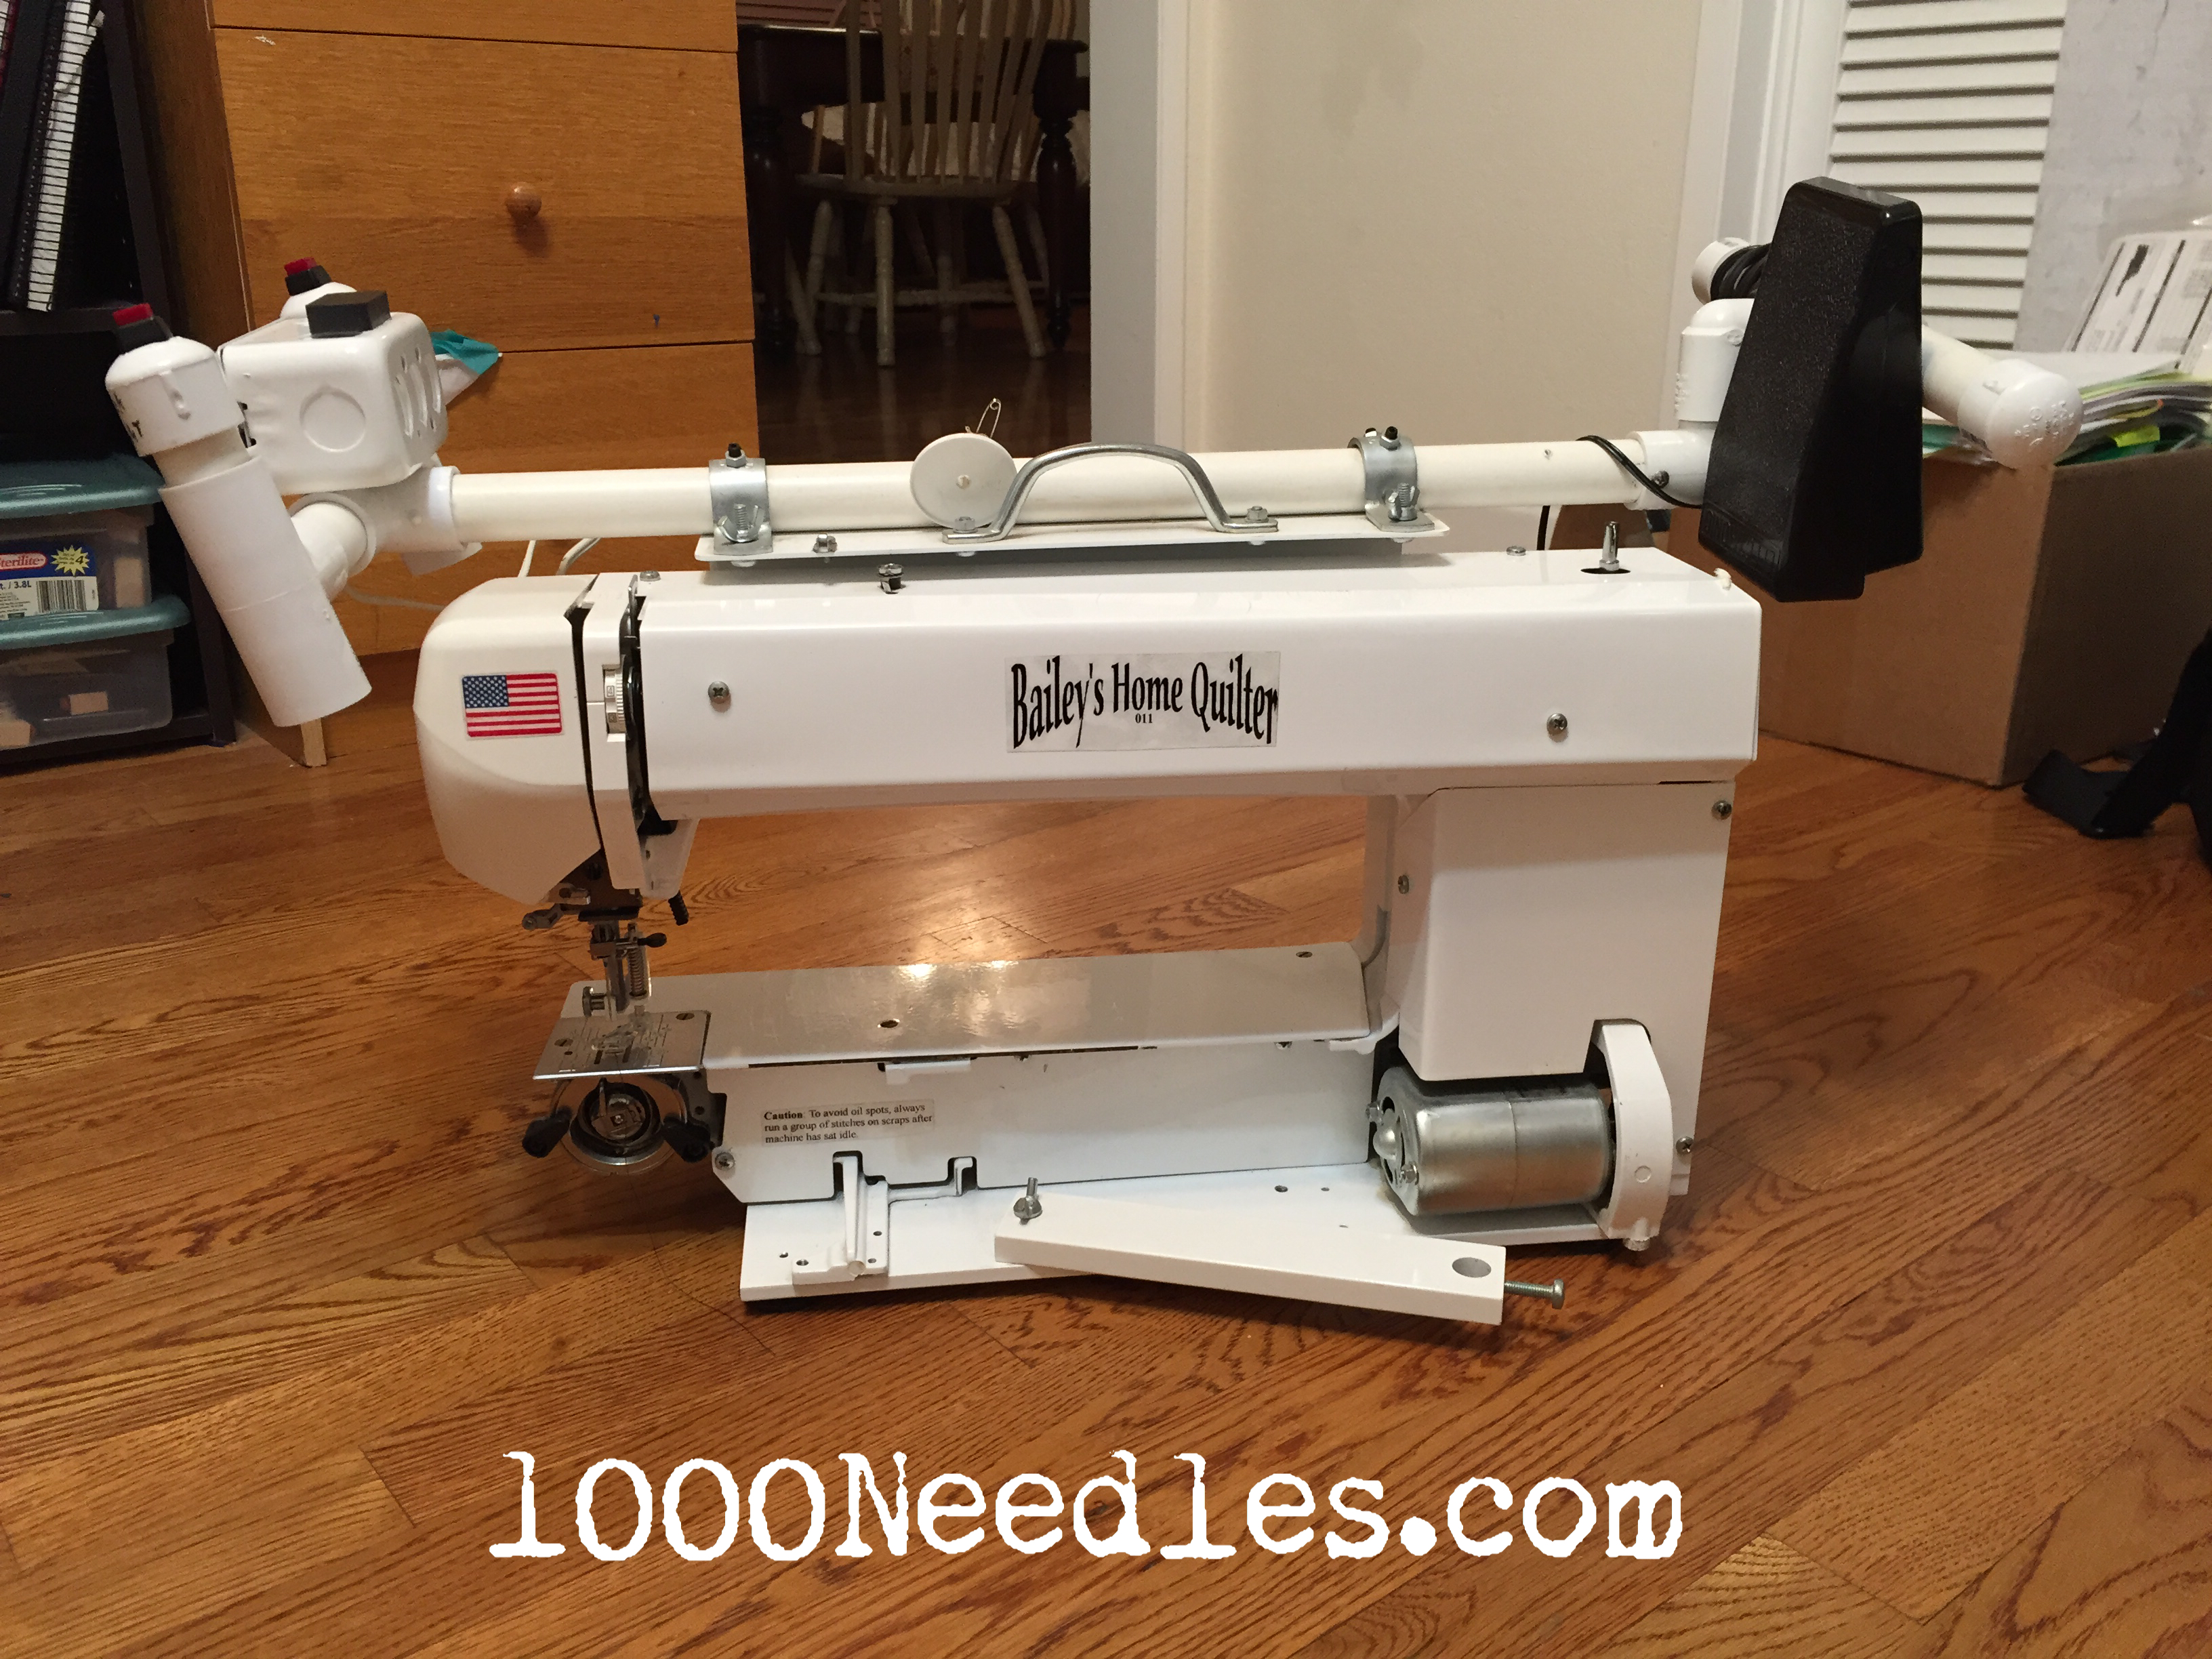 Mid Arm Quilting Machines For Home Use Bailey S Home